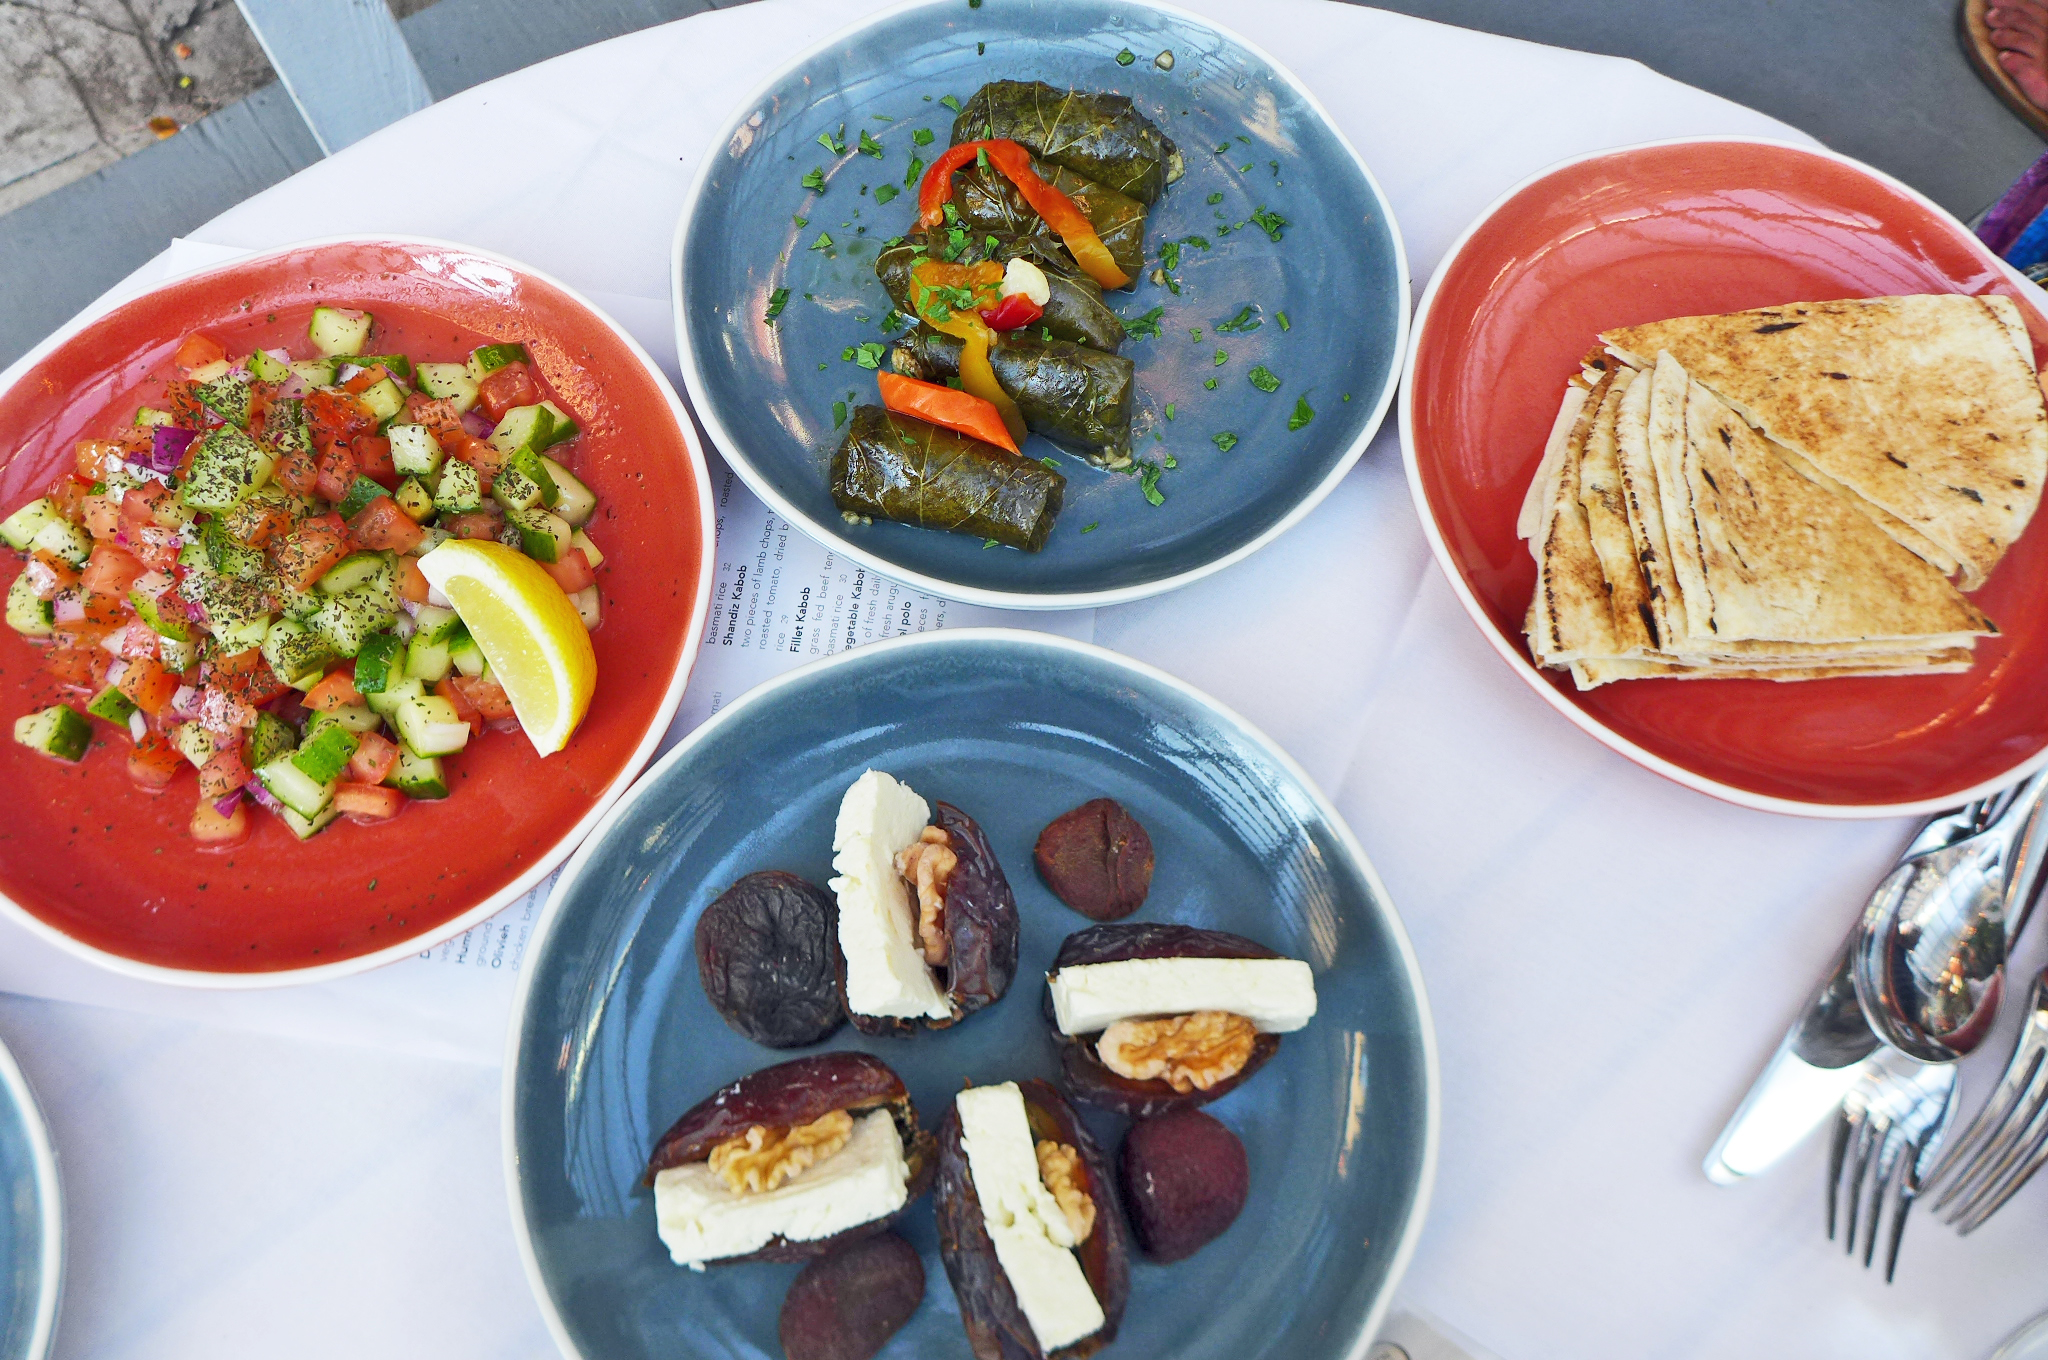 Four small plates in various colors and a pile of cut pitas.